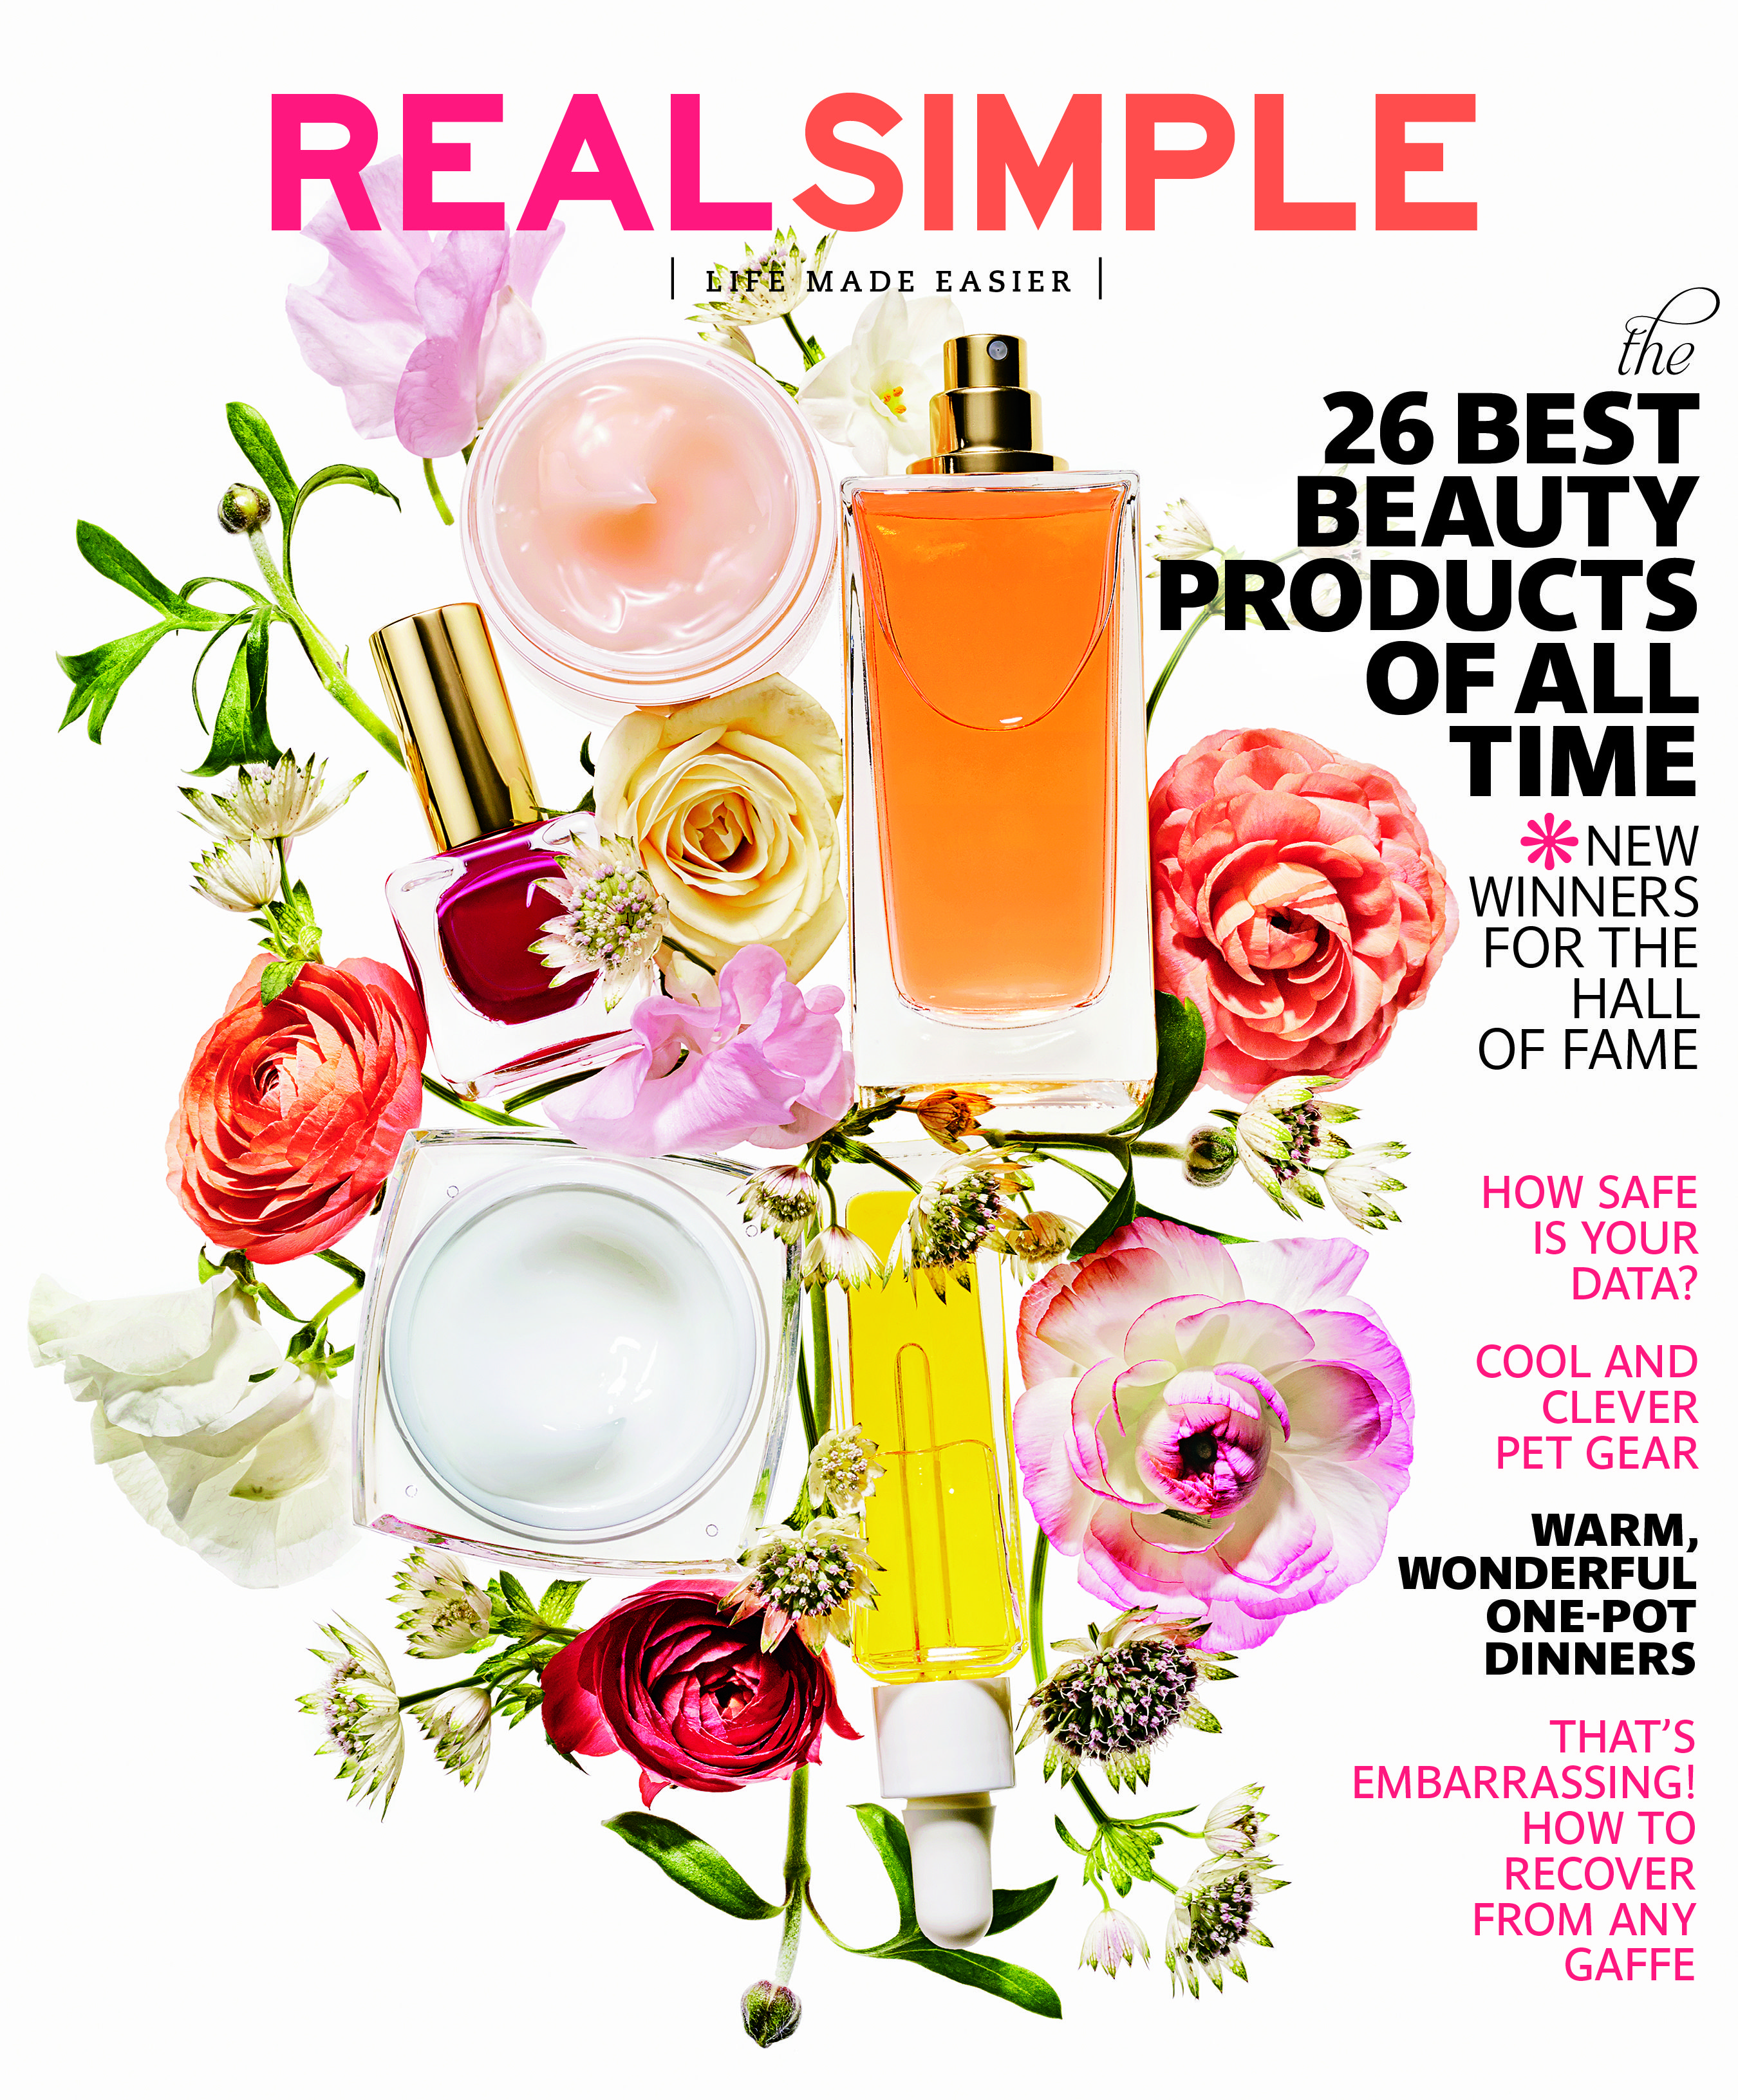 022 Real Simple Essay Contest Example Frightening Magazine Writing Life 2017 Full